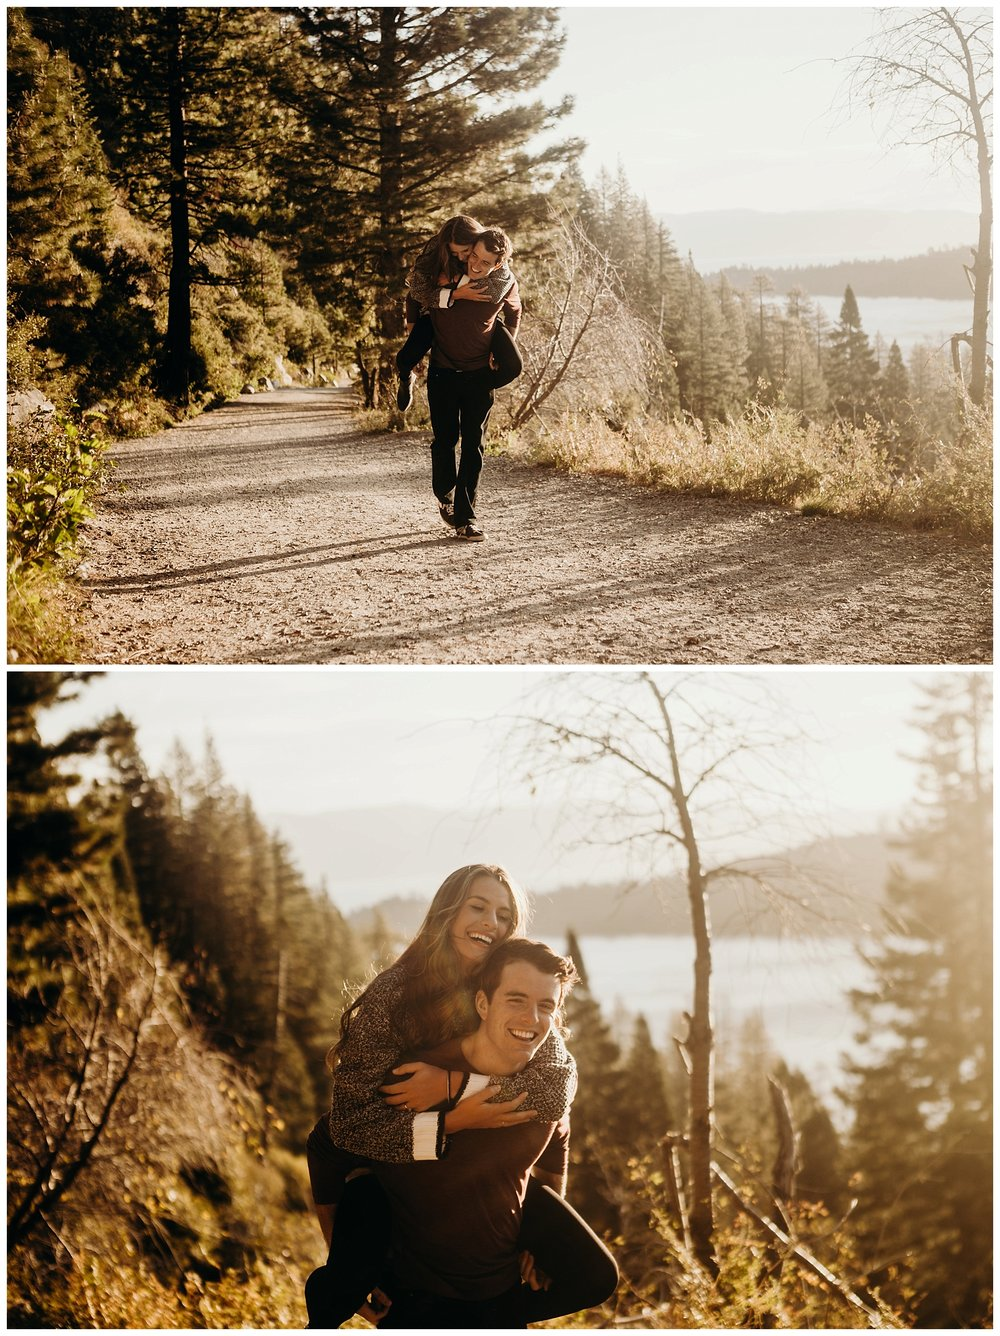 lake tahoe lifestyle photography - lake tahoe engagement photographer - lake tahoe elopement photographer - lake tahoe photographer - south lake tahoe photography-11.jpg